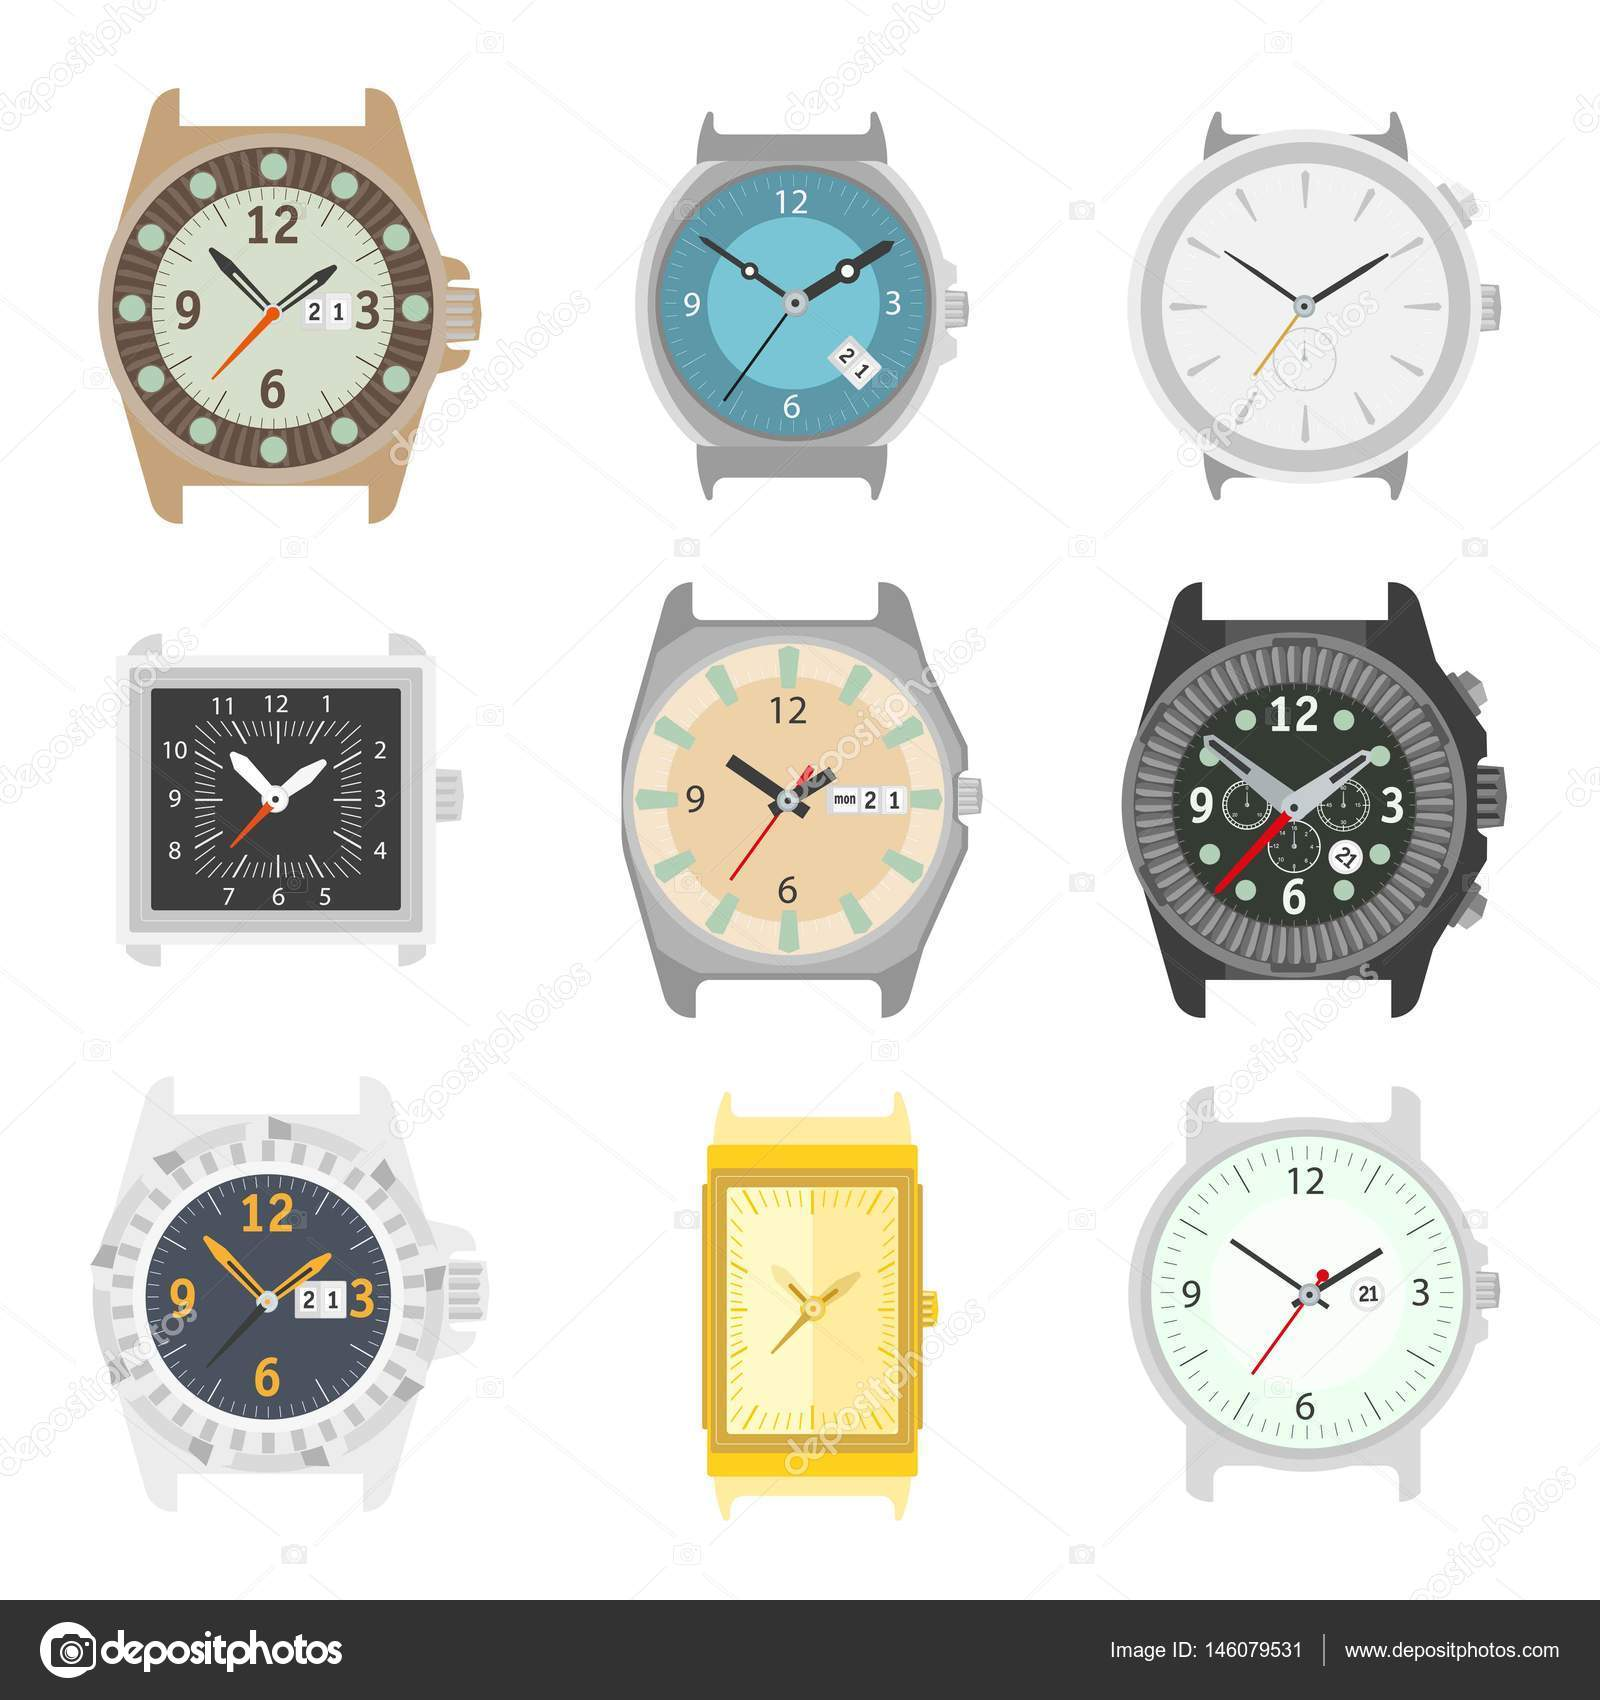 Watches In Stock